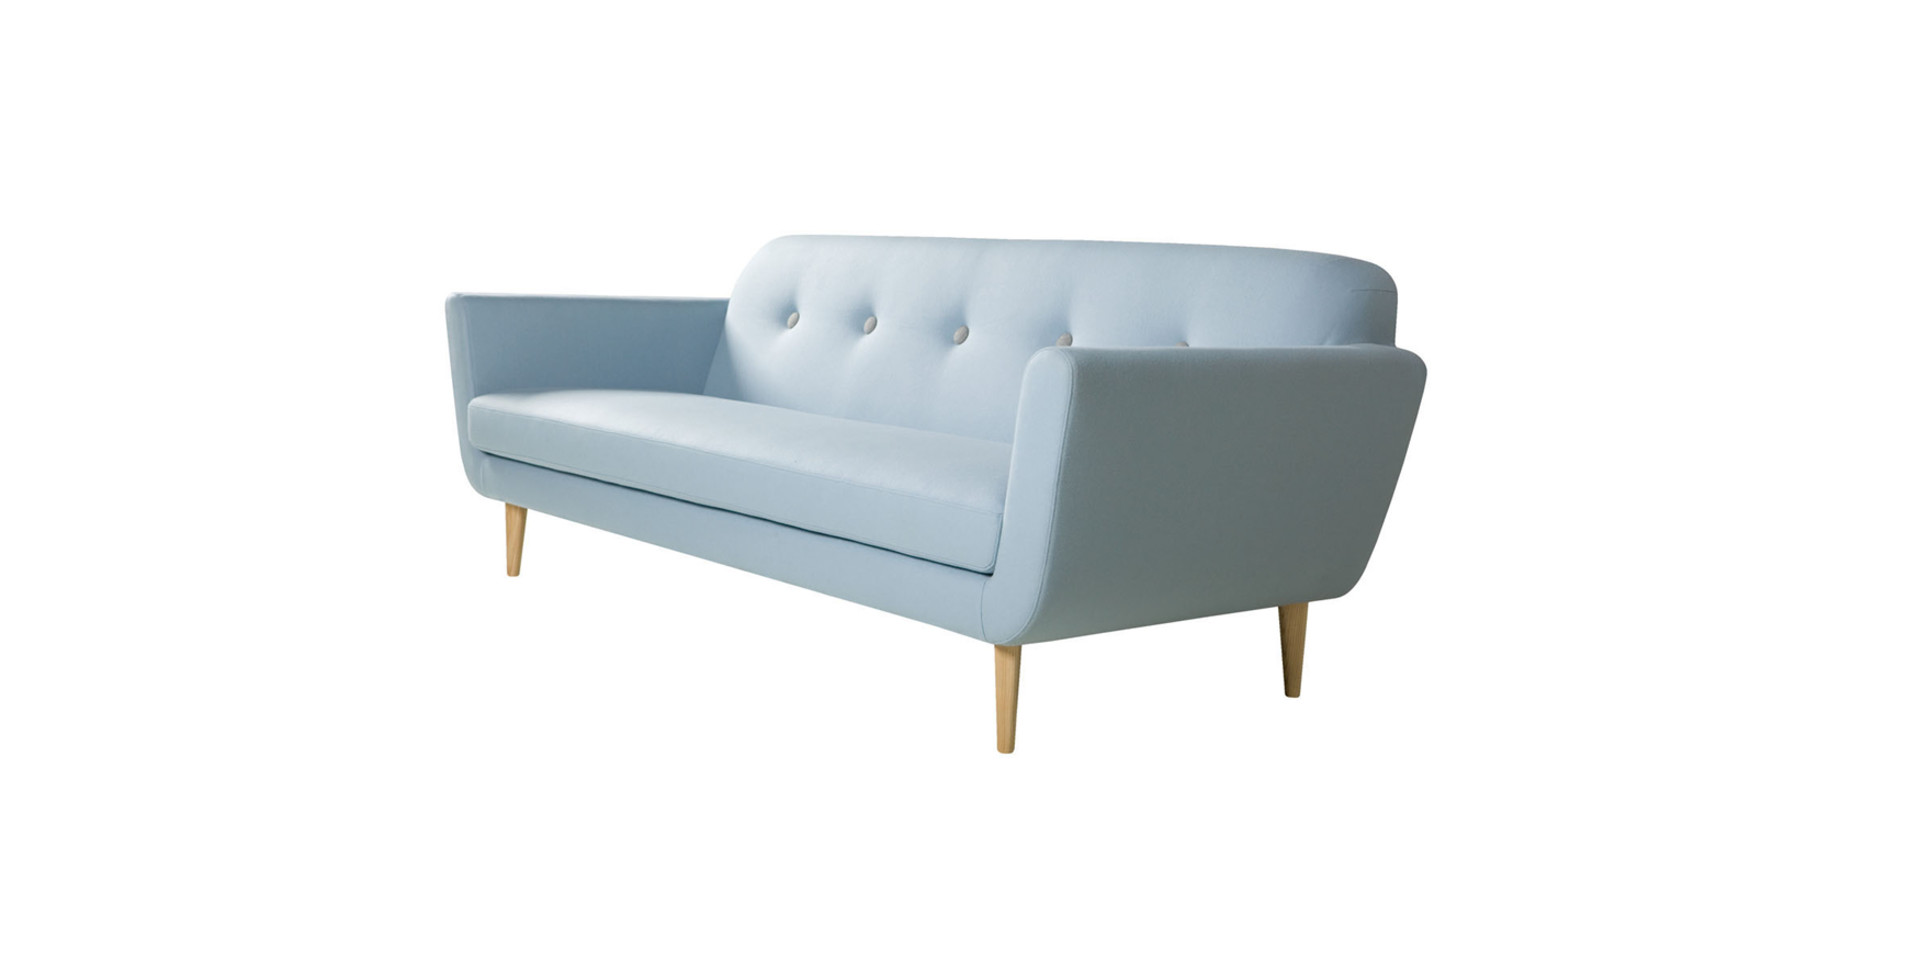 sits-otto-canape-3seater_panno2048_storm_blue_4